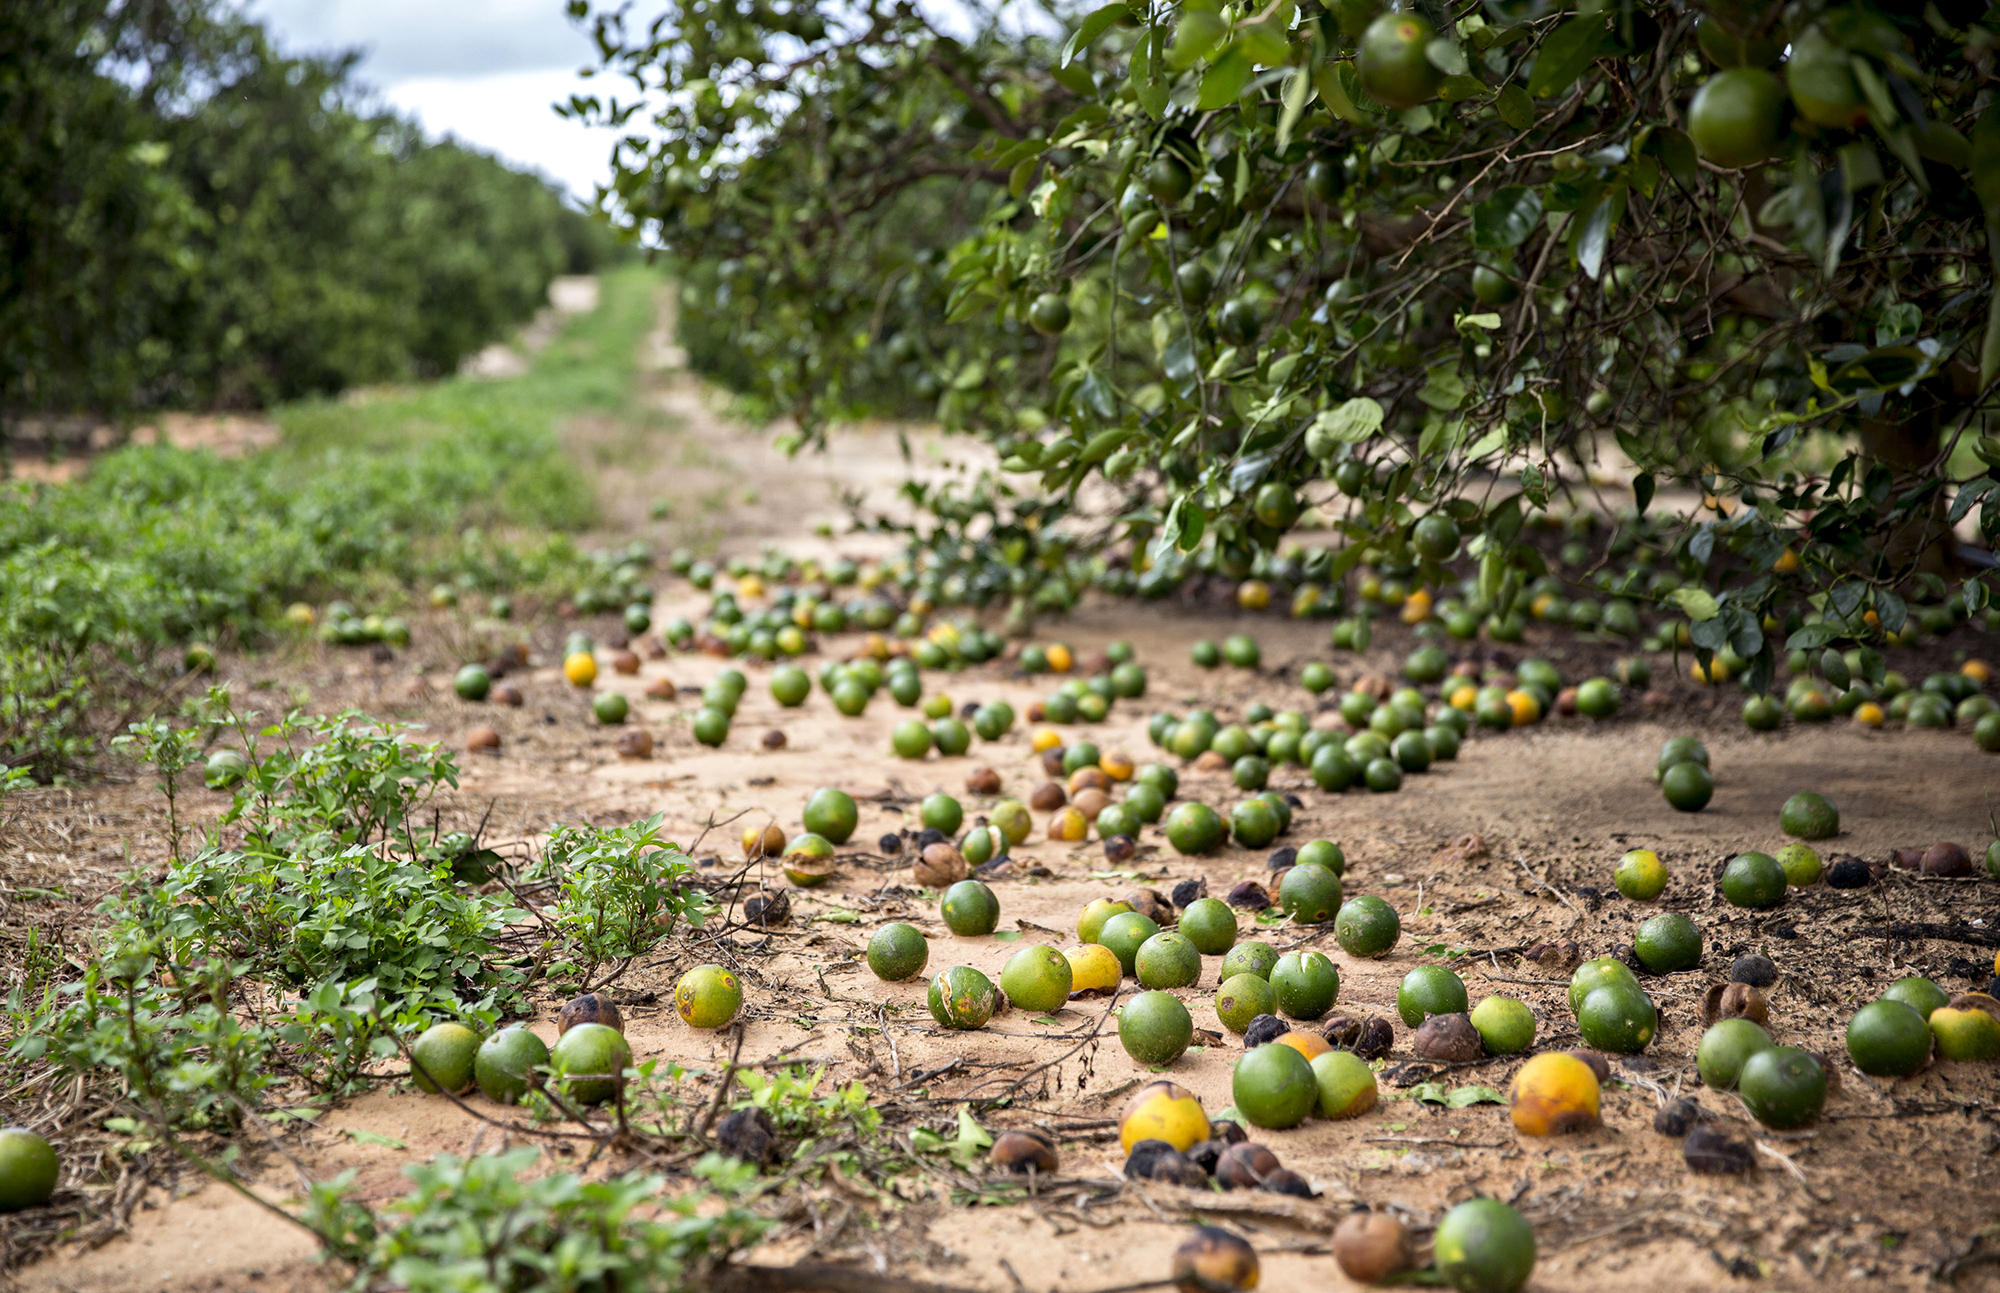 Serious Damage to Florida Citrus Crop, Says State Ag Commissioner